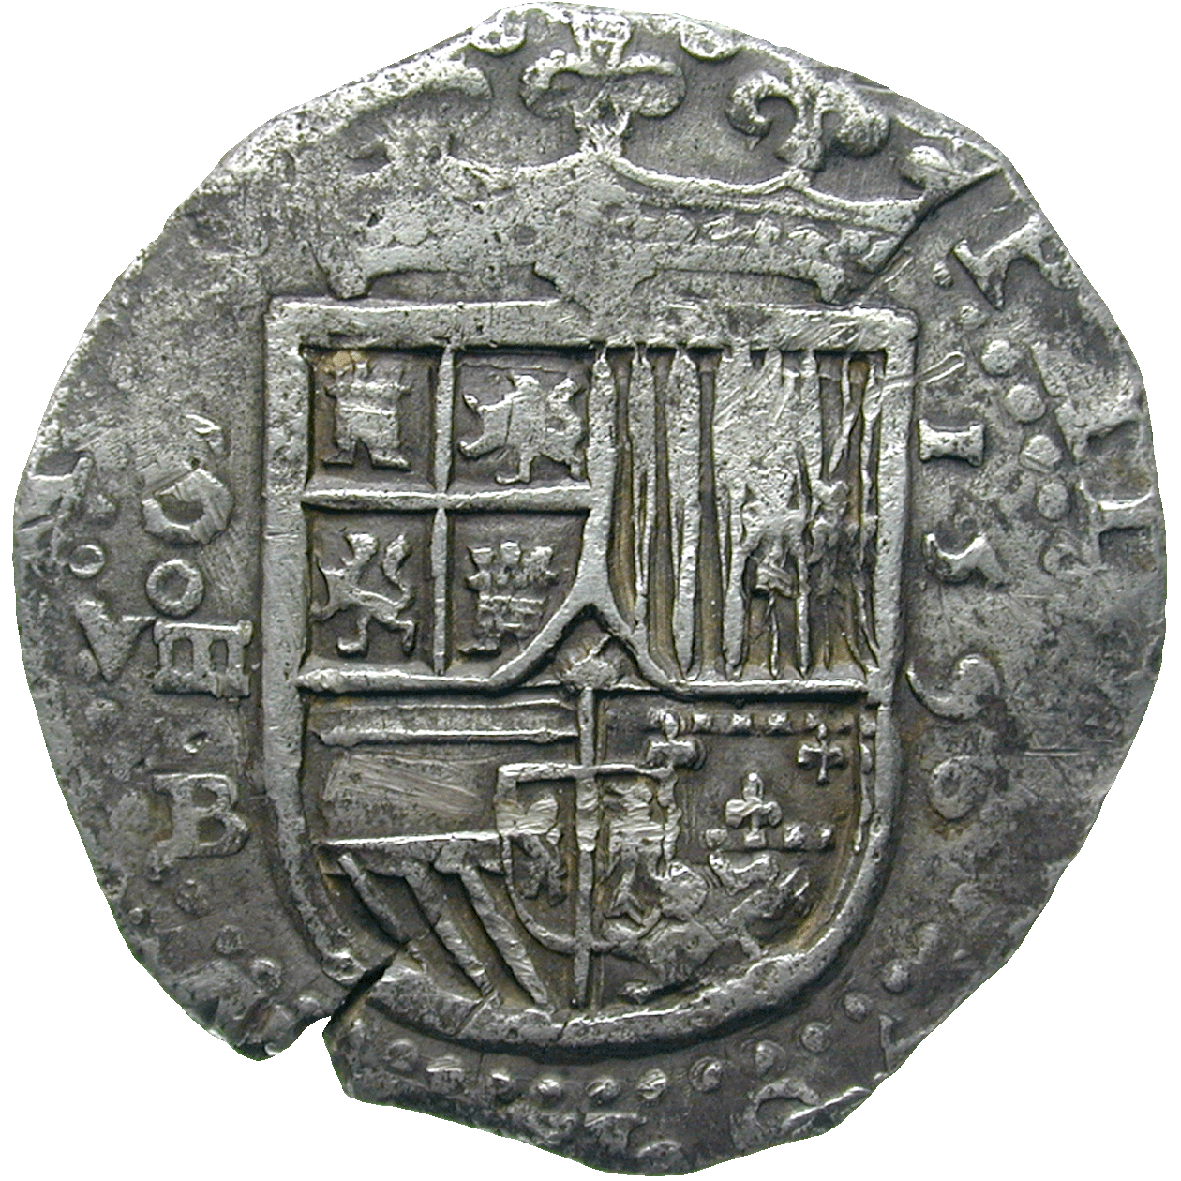 Kingdom of Spain, Philip II, Real de a Ocho (Peso) (obverse)